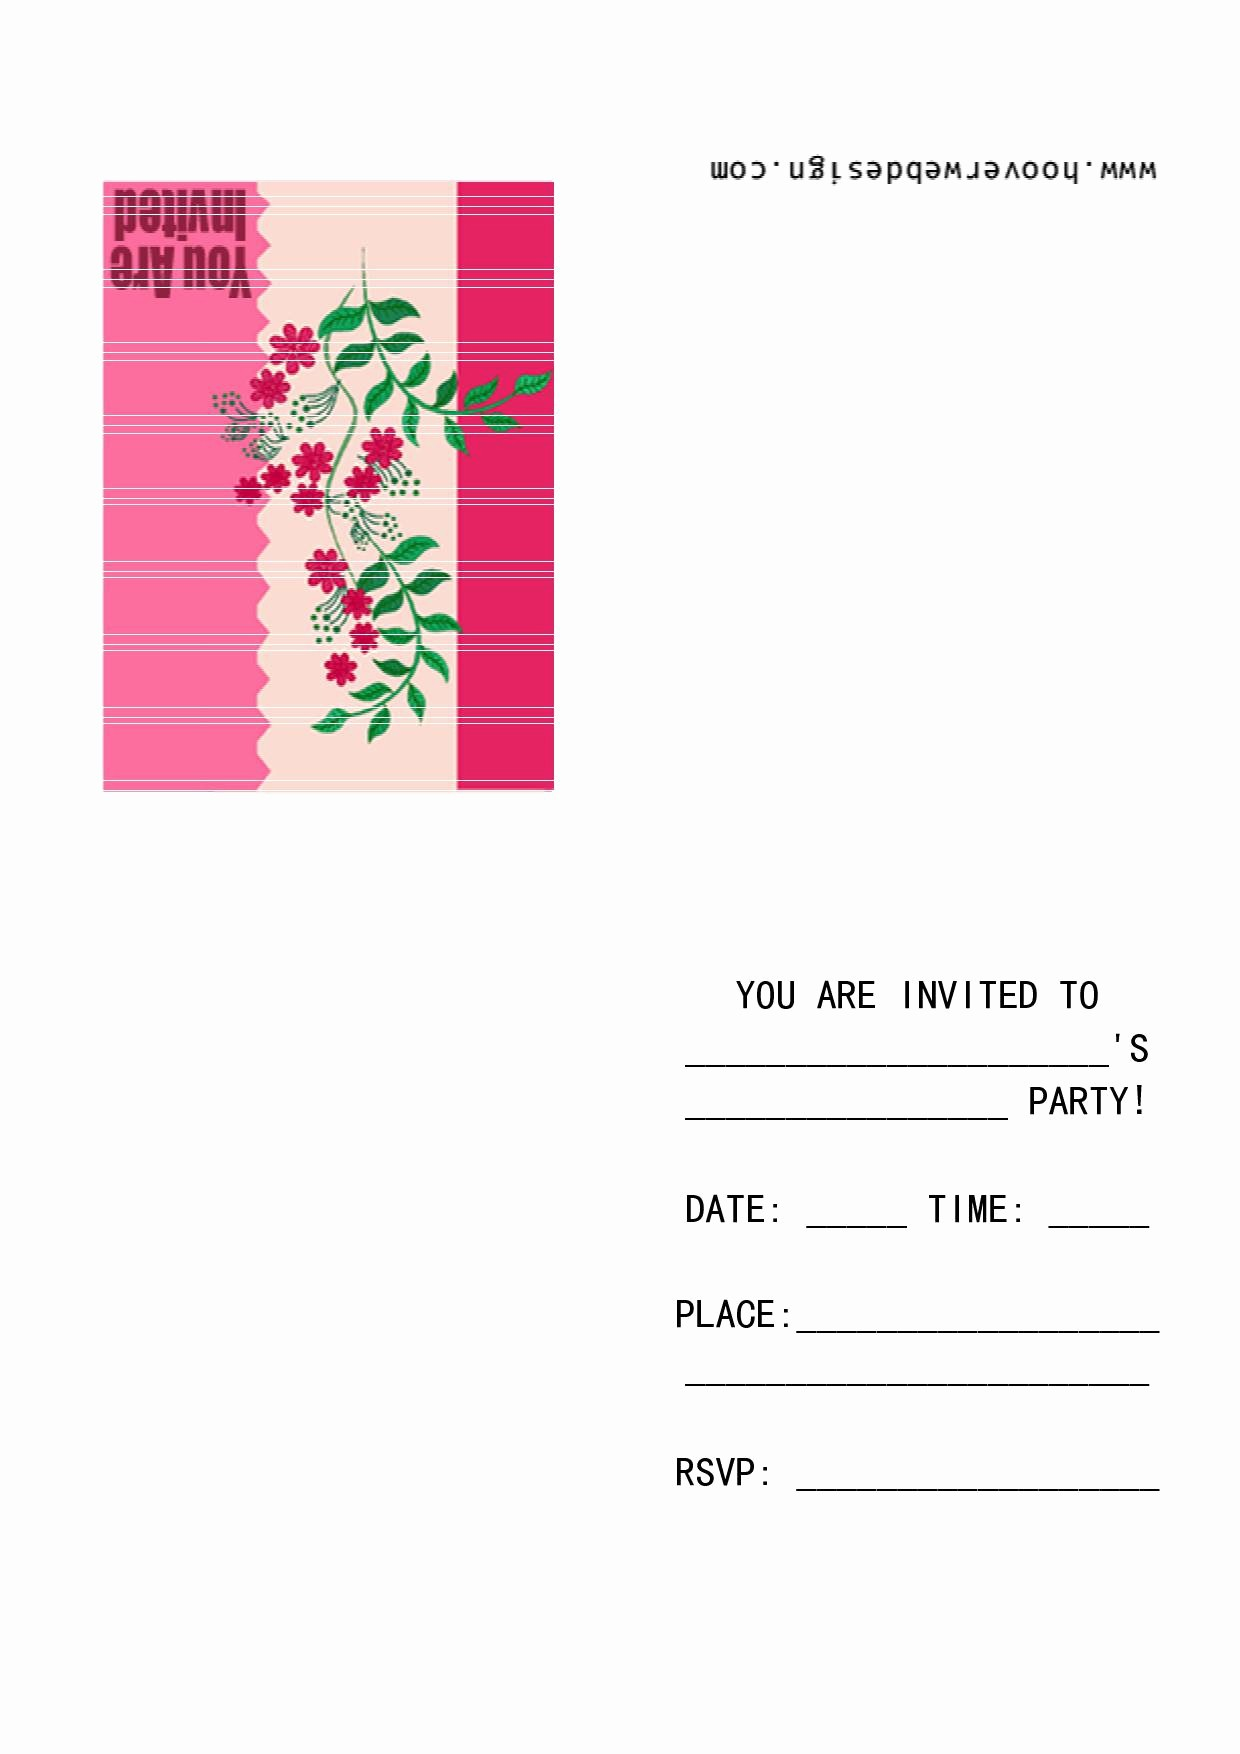 Microsoft Word Template for Invitations Awesome Party Invite Template